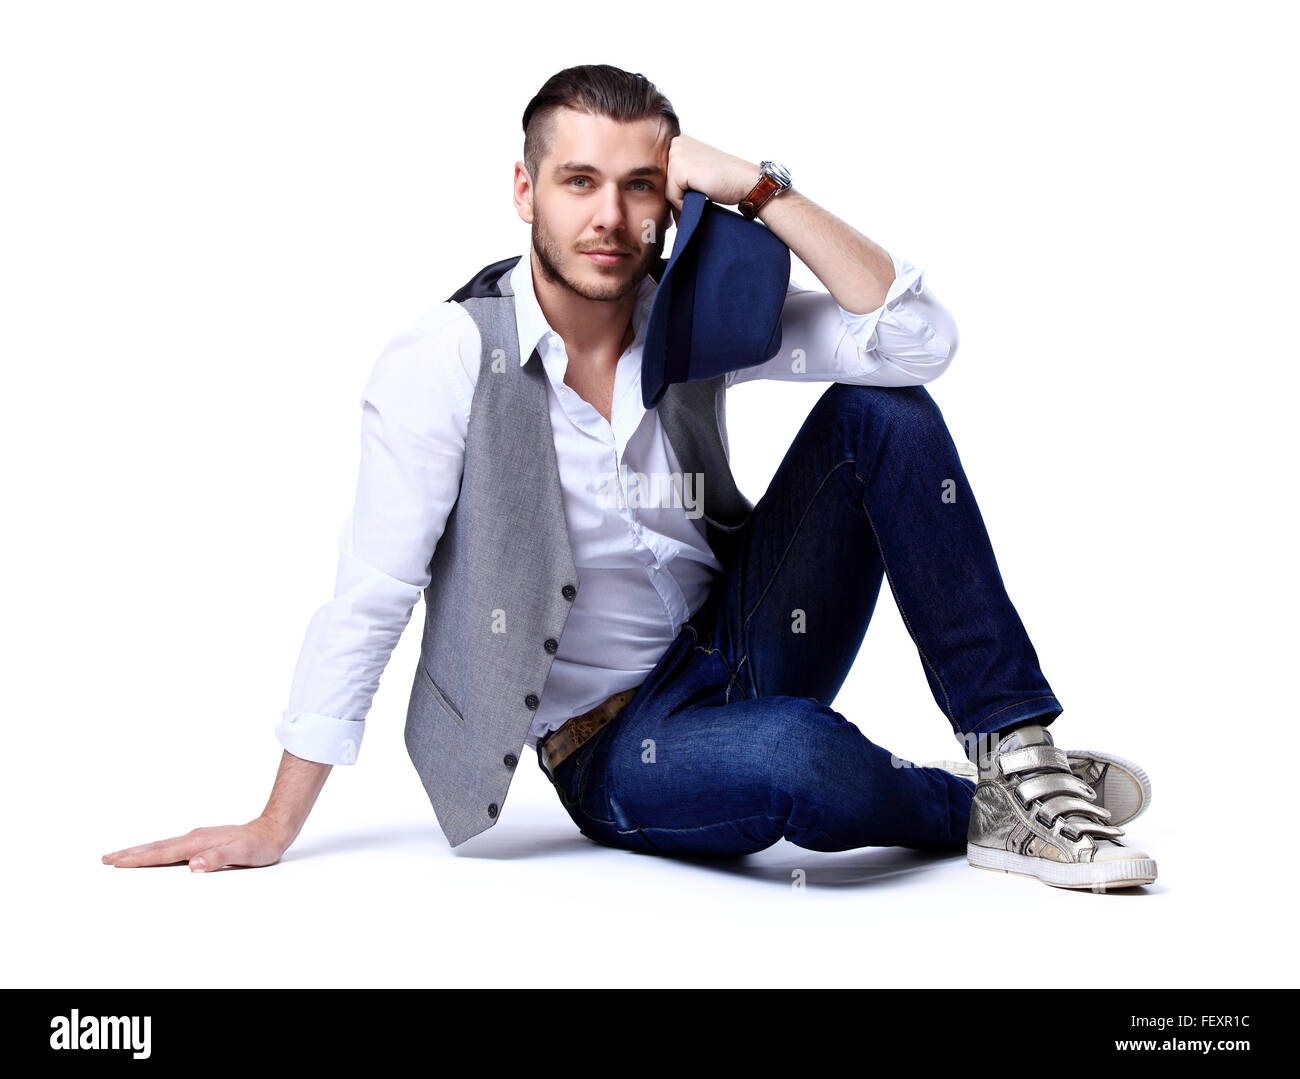 young casual man posing on the floor and smiling to the camera, against white background - Stock Image